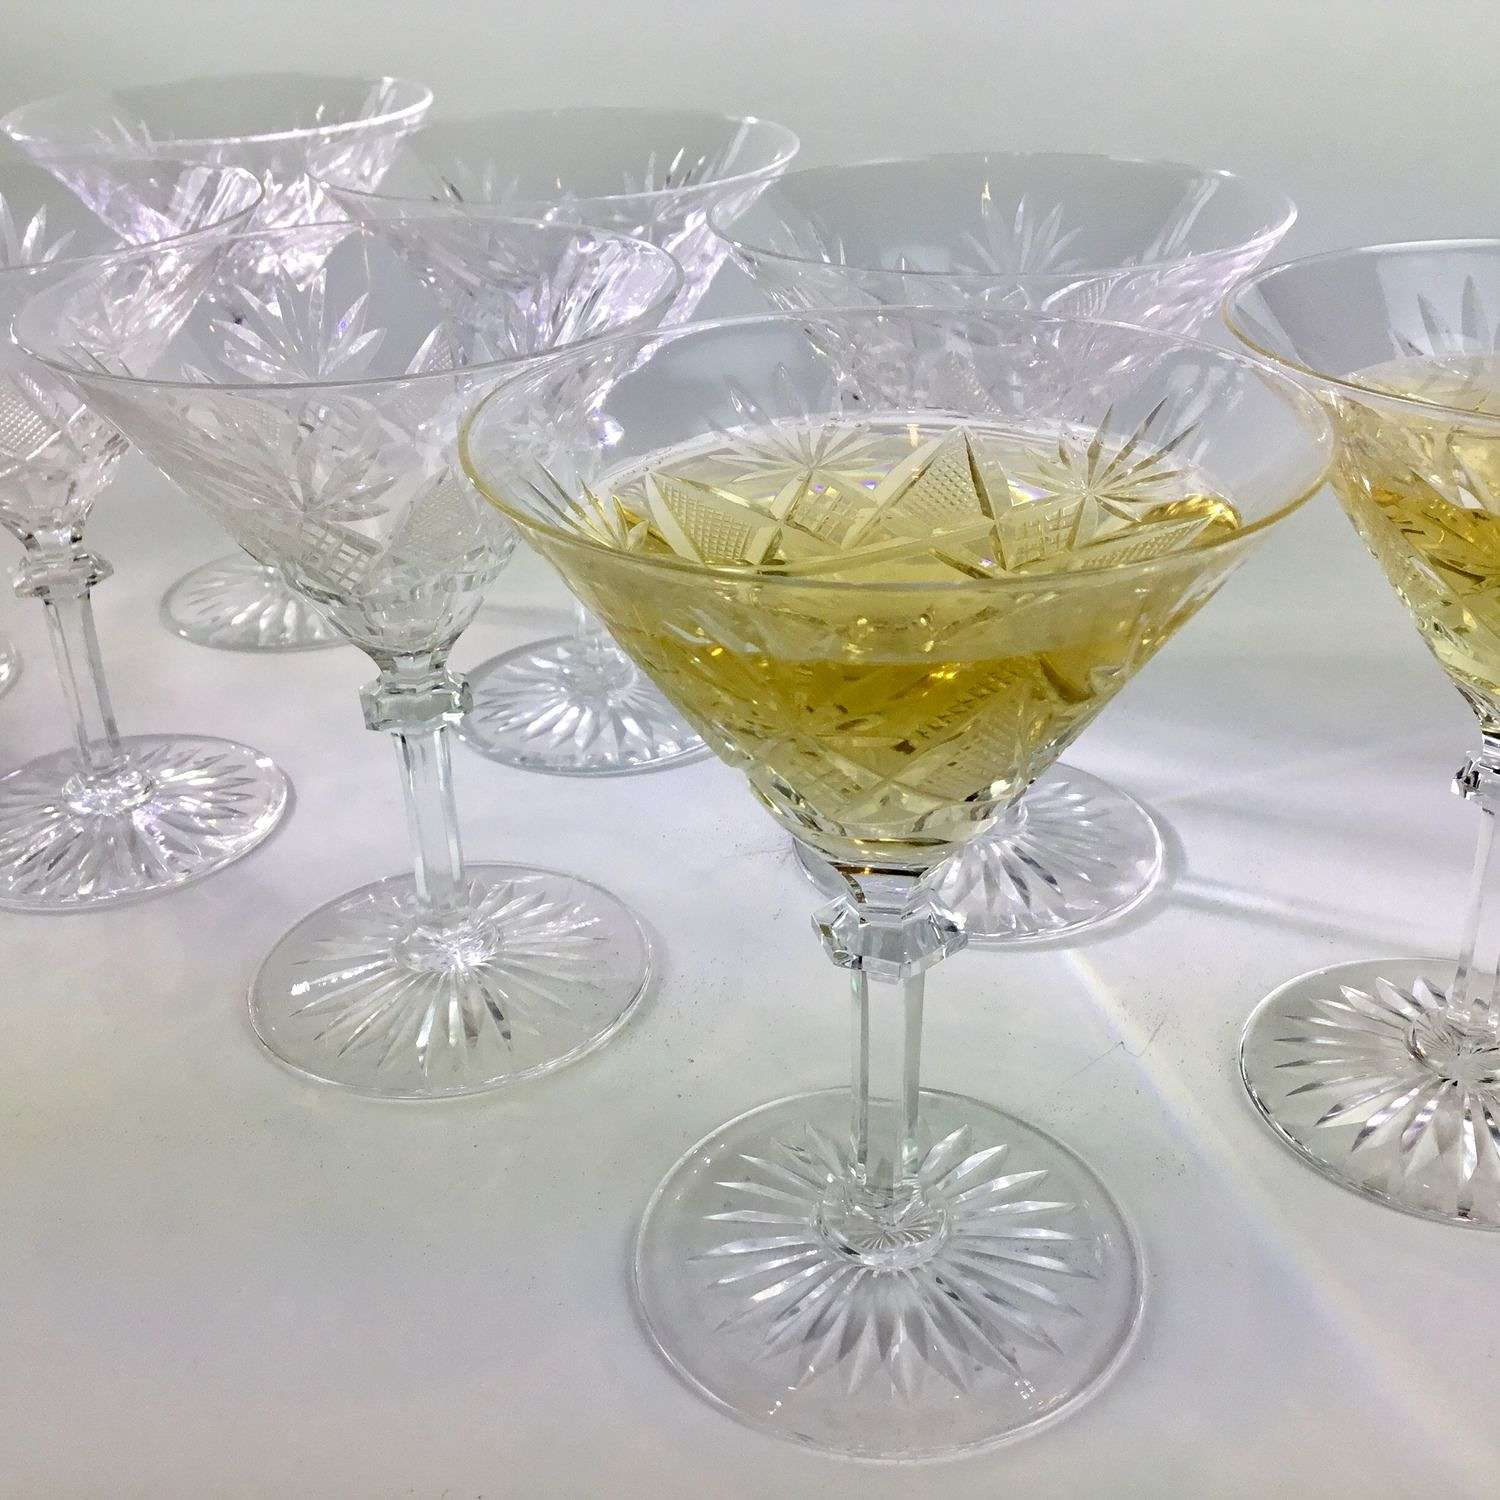 A spectacular set of Val Saint Lambert crystal Martini glasses